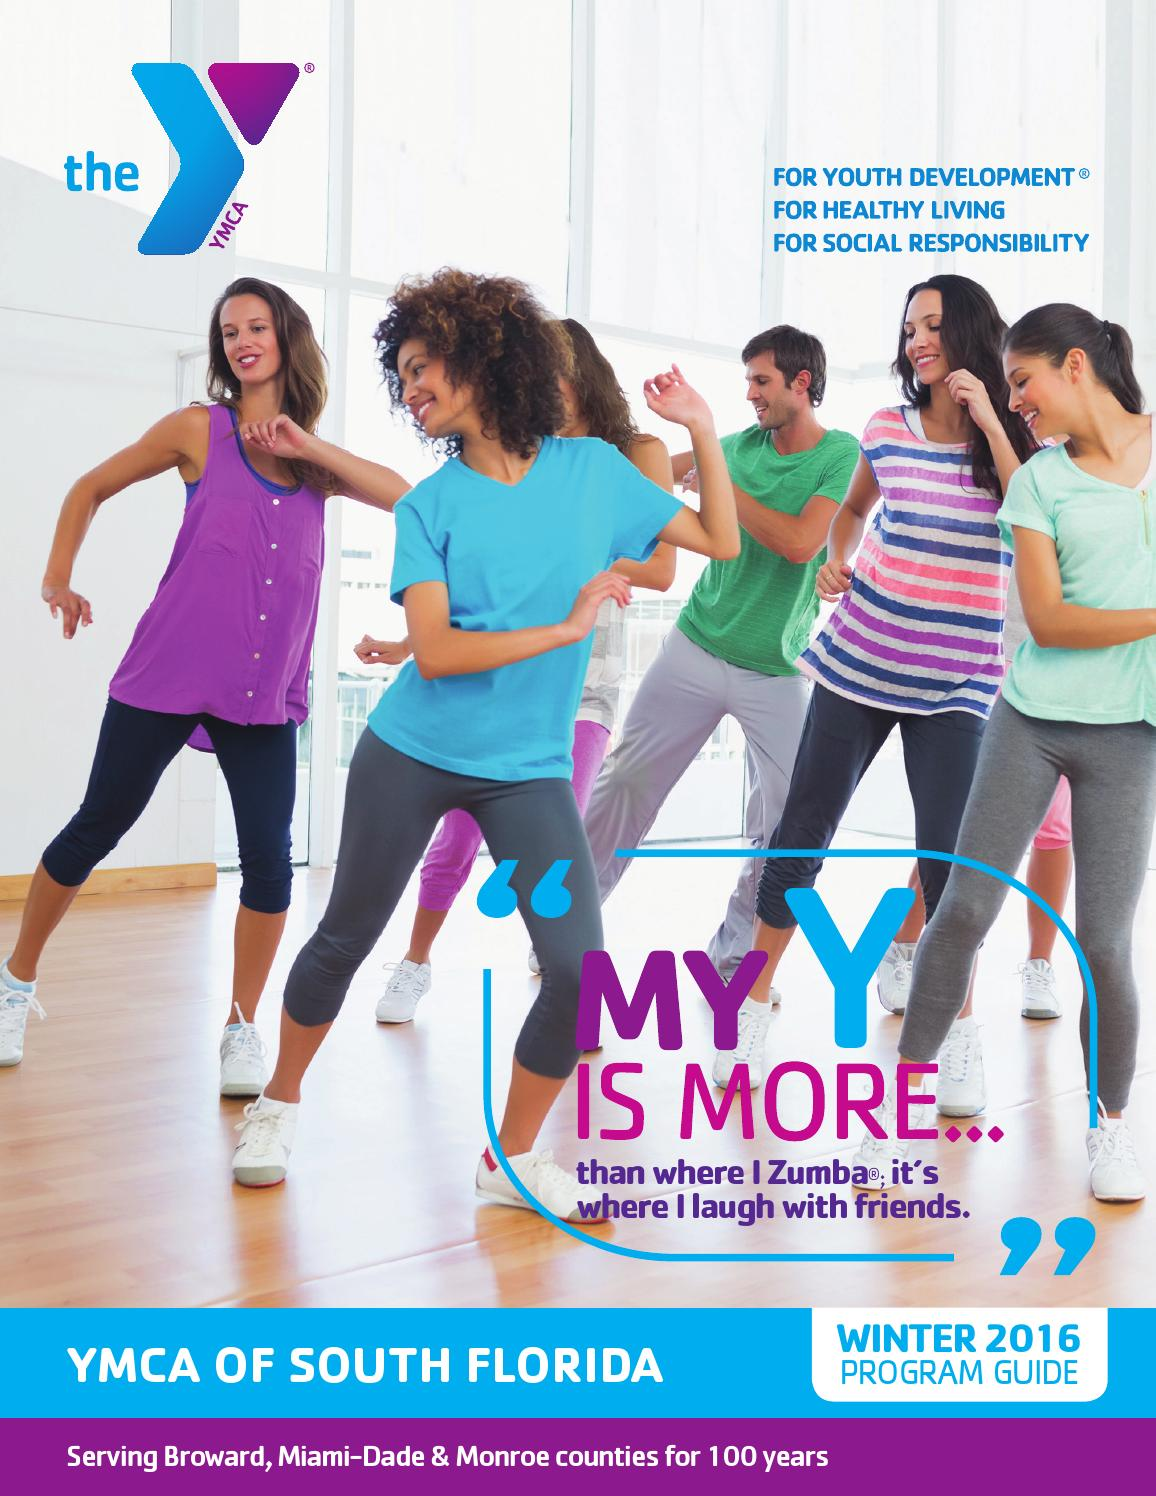 ymca winter 2016 program guide by ymca of south florida issuu